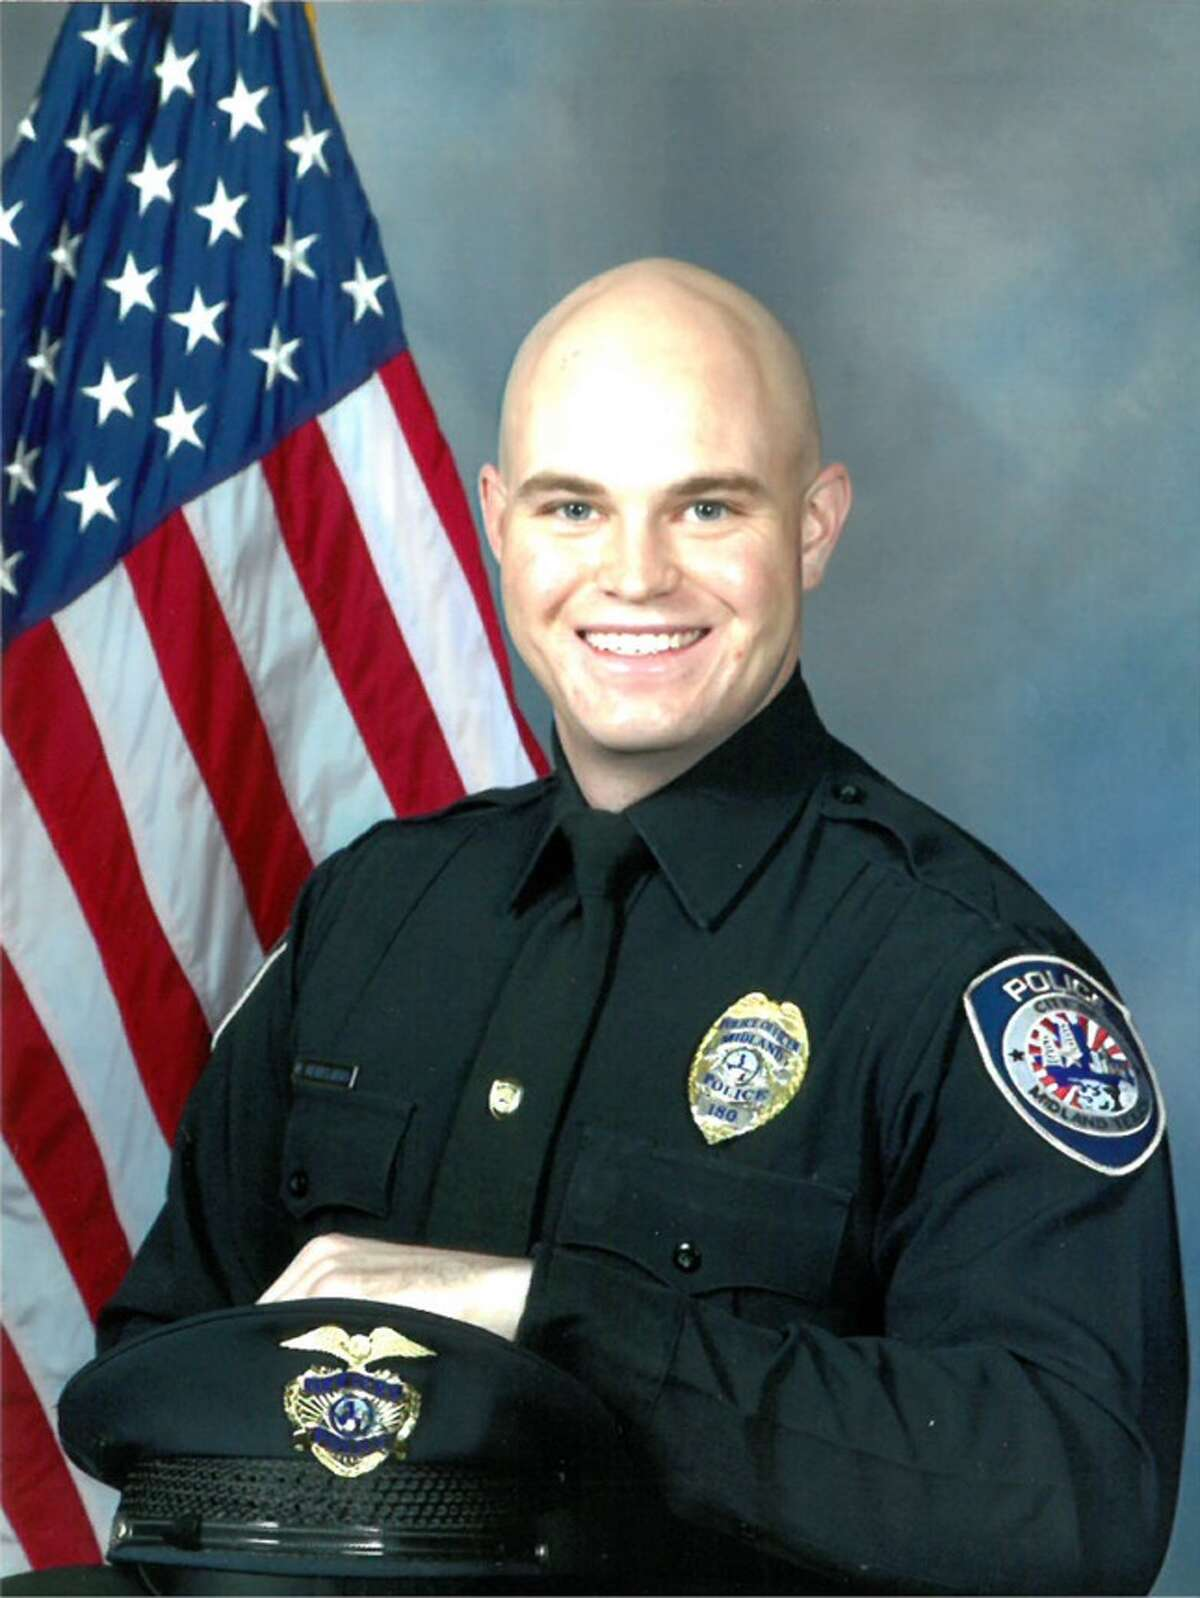 Midland Police Department Officer Nathan Heidelberg died this morning after being shot while responding to an alarm at a local residence, according to the city's spokesman.